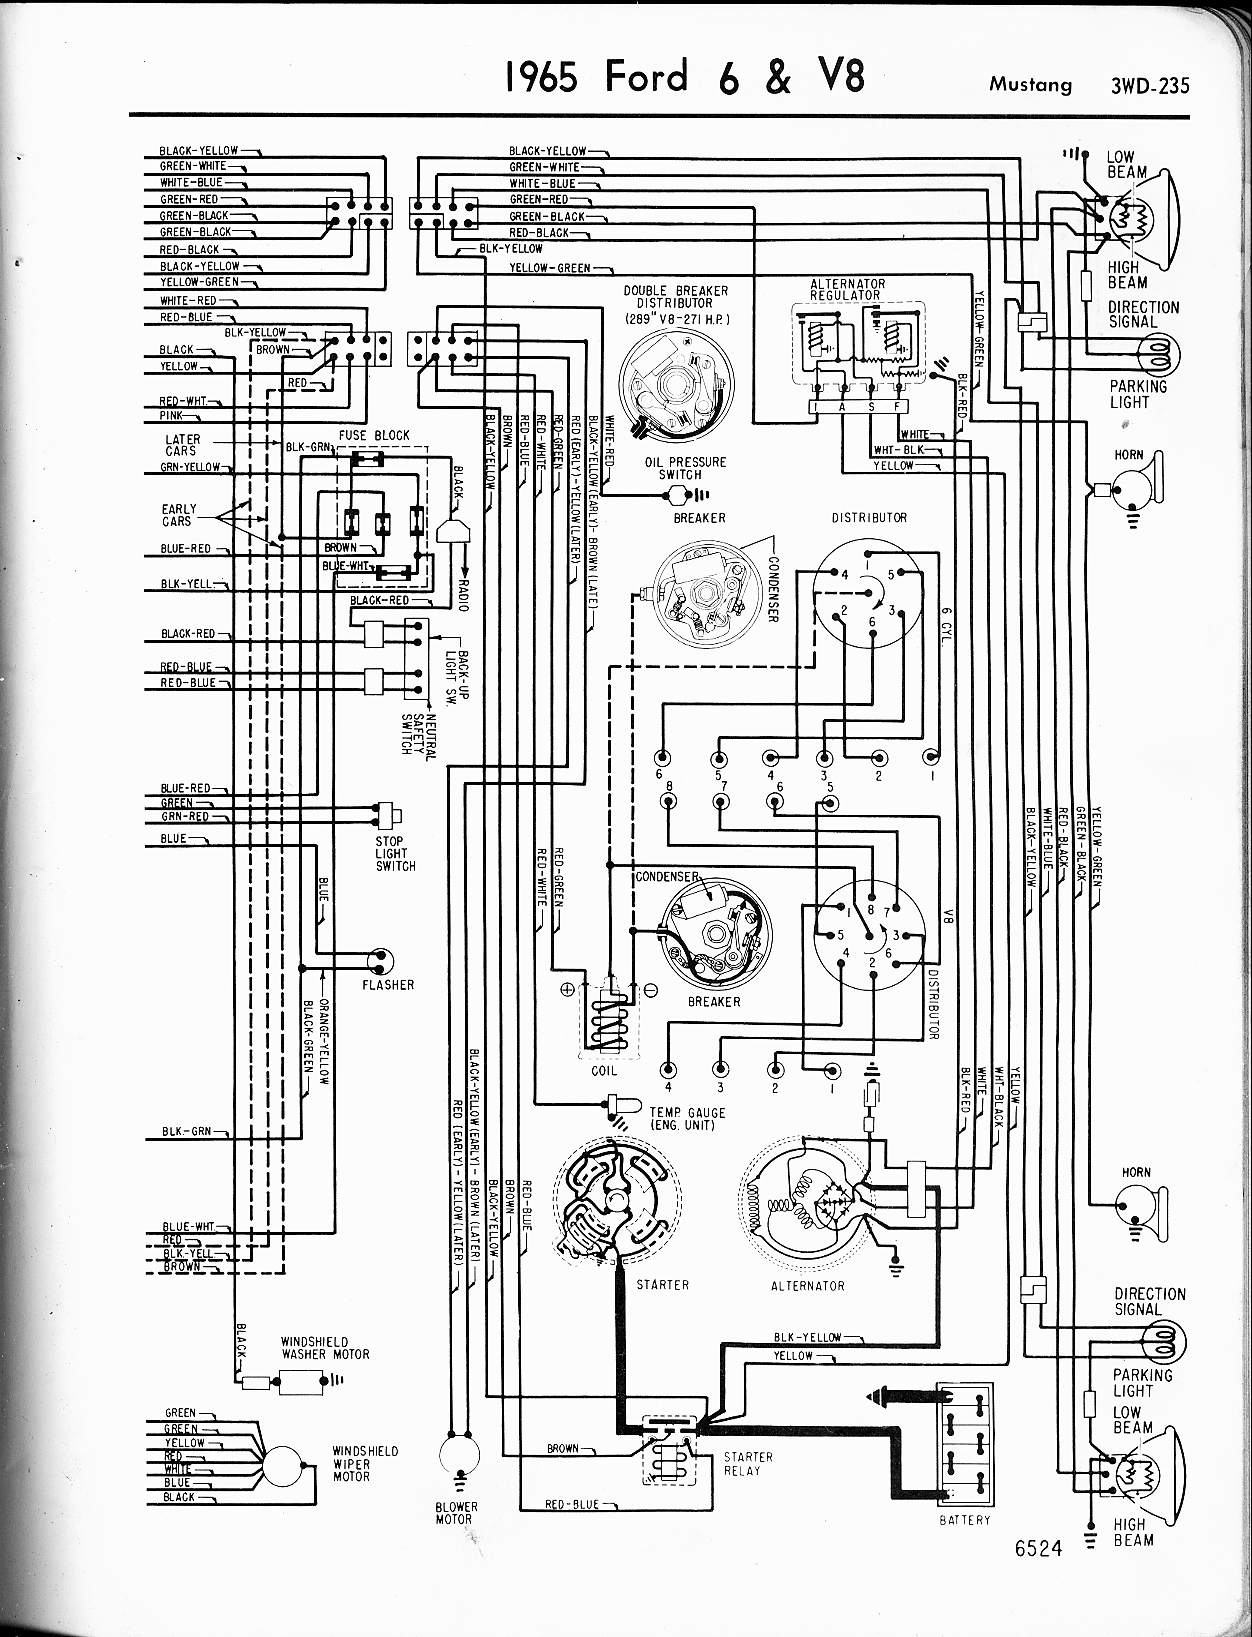 1969 Mustang Wiring Schematic Guide And Troubleshooting Of 1967 Electrical Diagram Pdf Detailed Rh 7 6 Ocotillo Paysage Com Manual